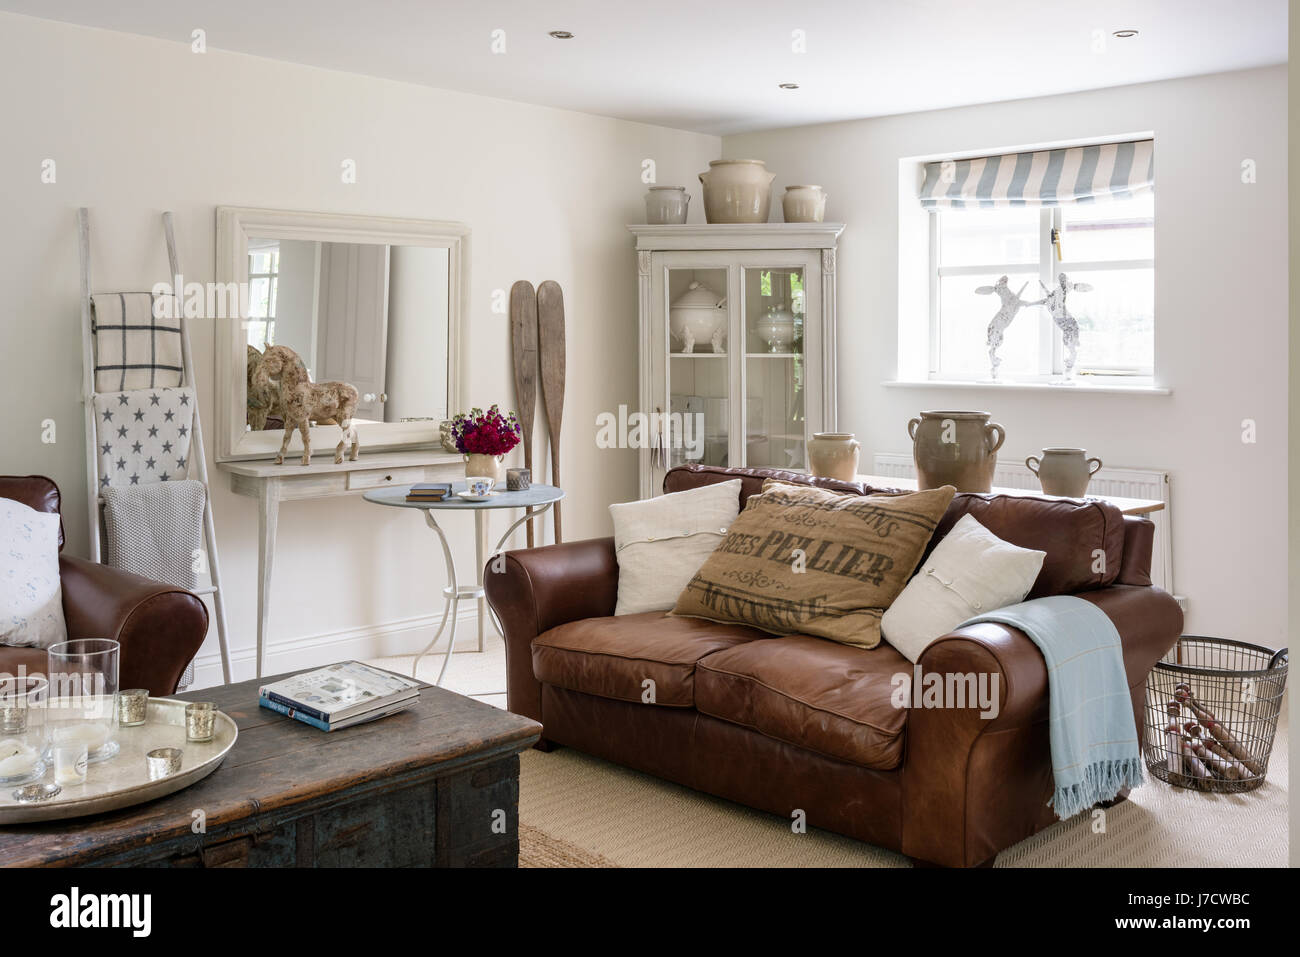 Laura Ashley Leather Sofa And Grey Armoire From Scandi Living In Sitting Room With Indian Dowry Chest Decorative Oars The Walls Are Painted Po